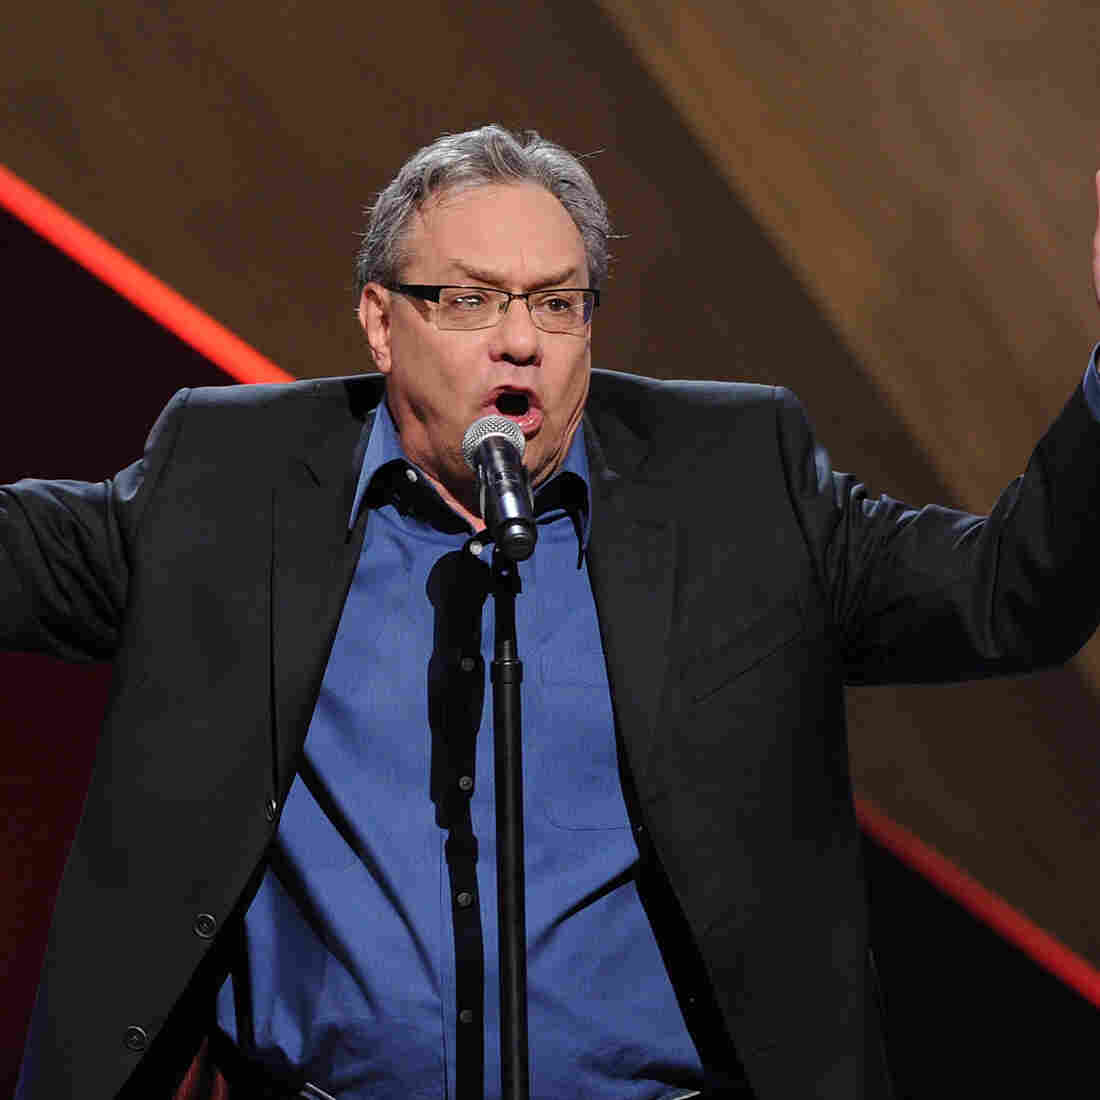 This week's Very Important Puzzler is comedian Lewis Black.